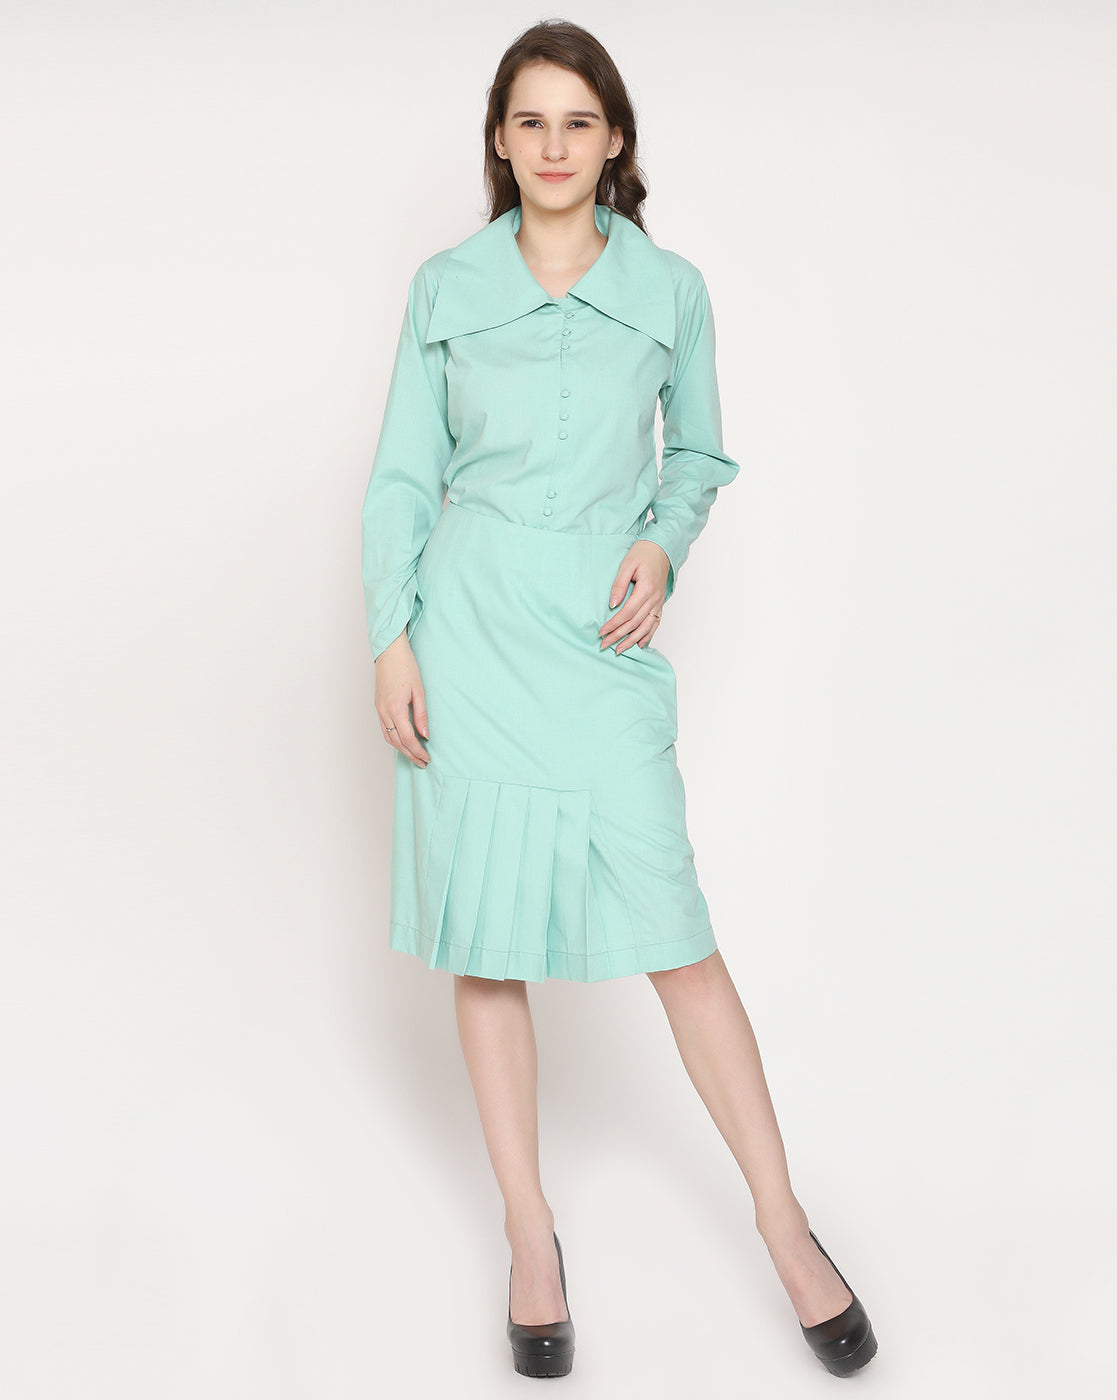 The Dainty Pleated skirt - Sea Green